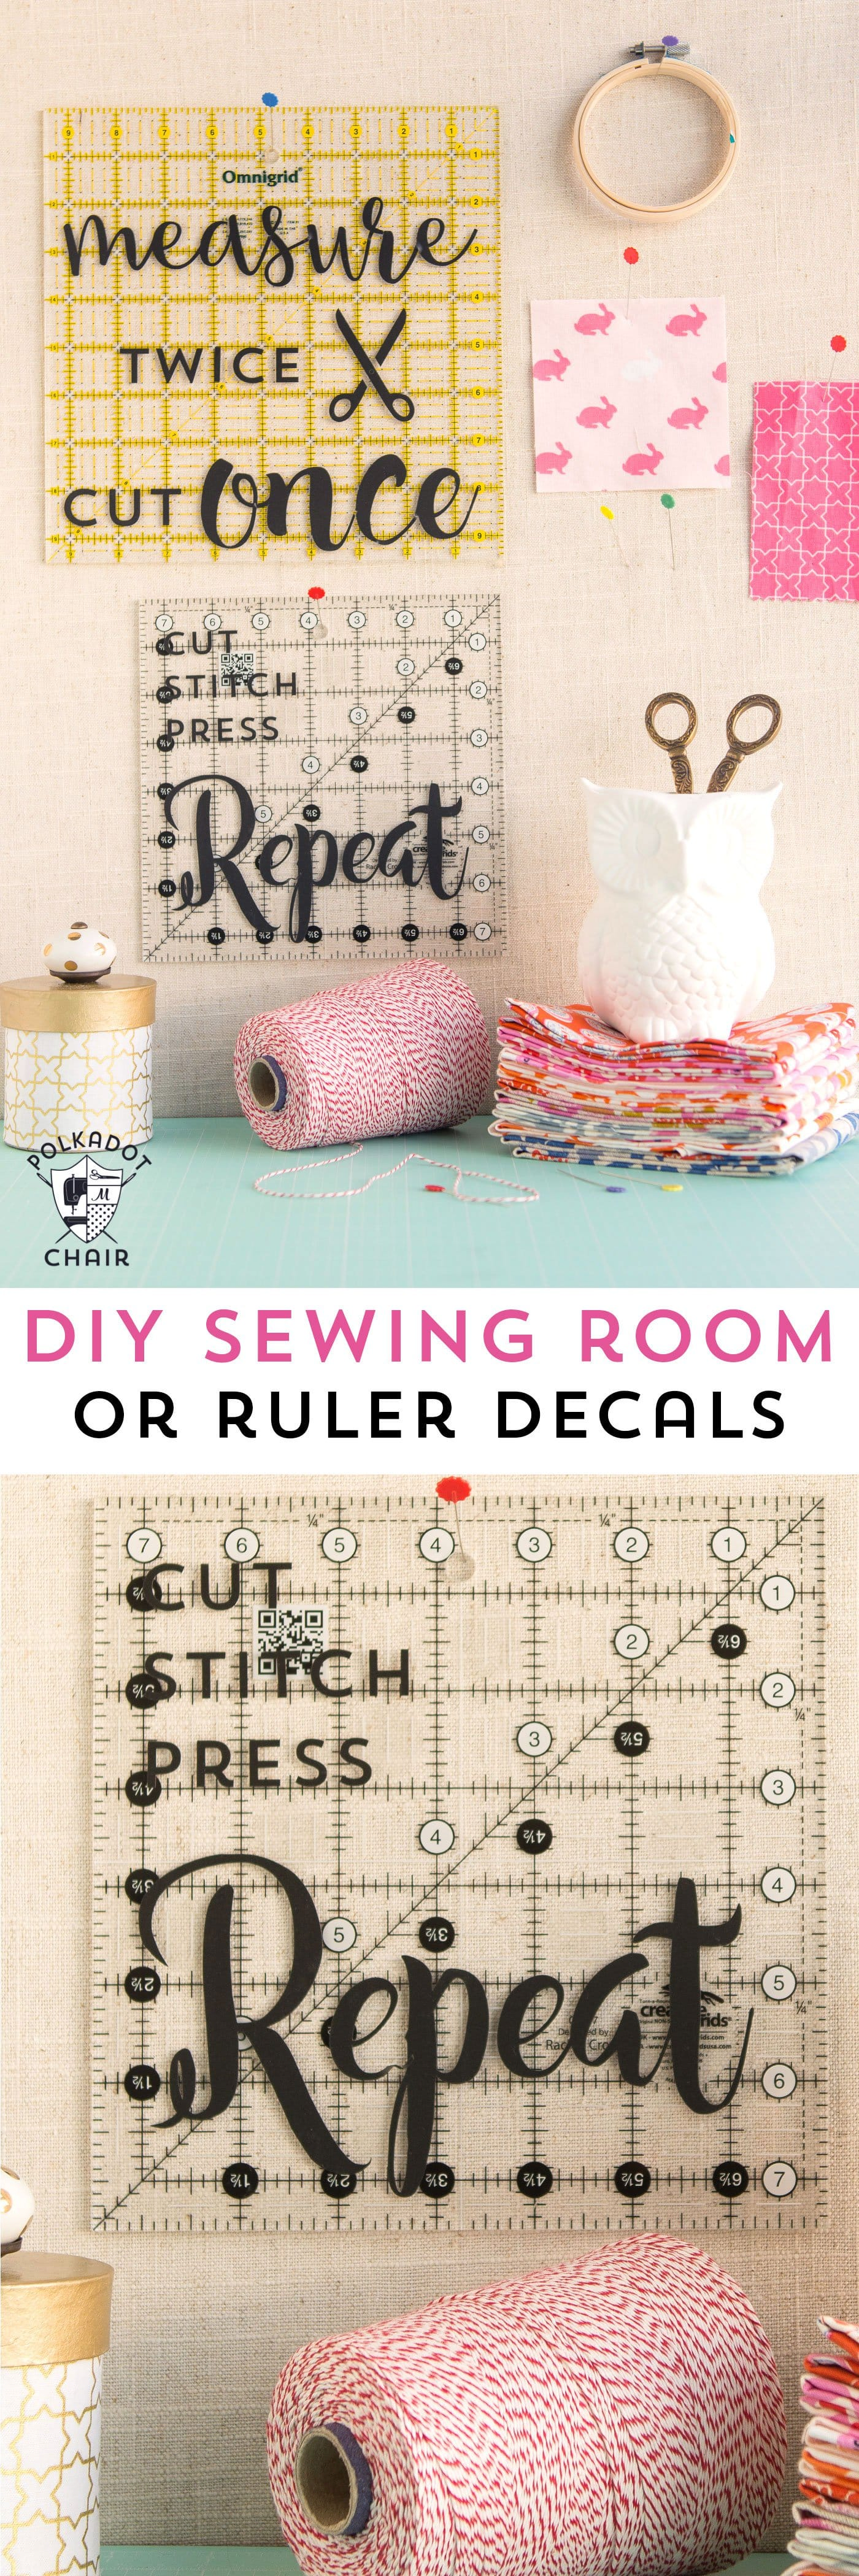 Diy sewing room decor ideas and free cricut cut files the diy sewing and quilting decals for quilt rulers or to use as wall decor in a amipublicfo Images